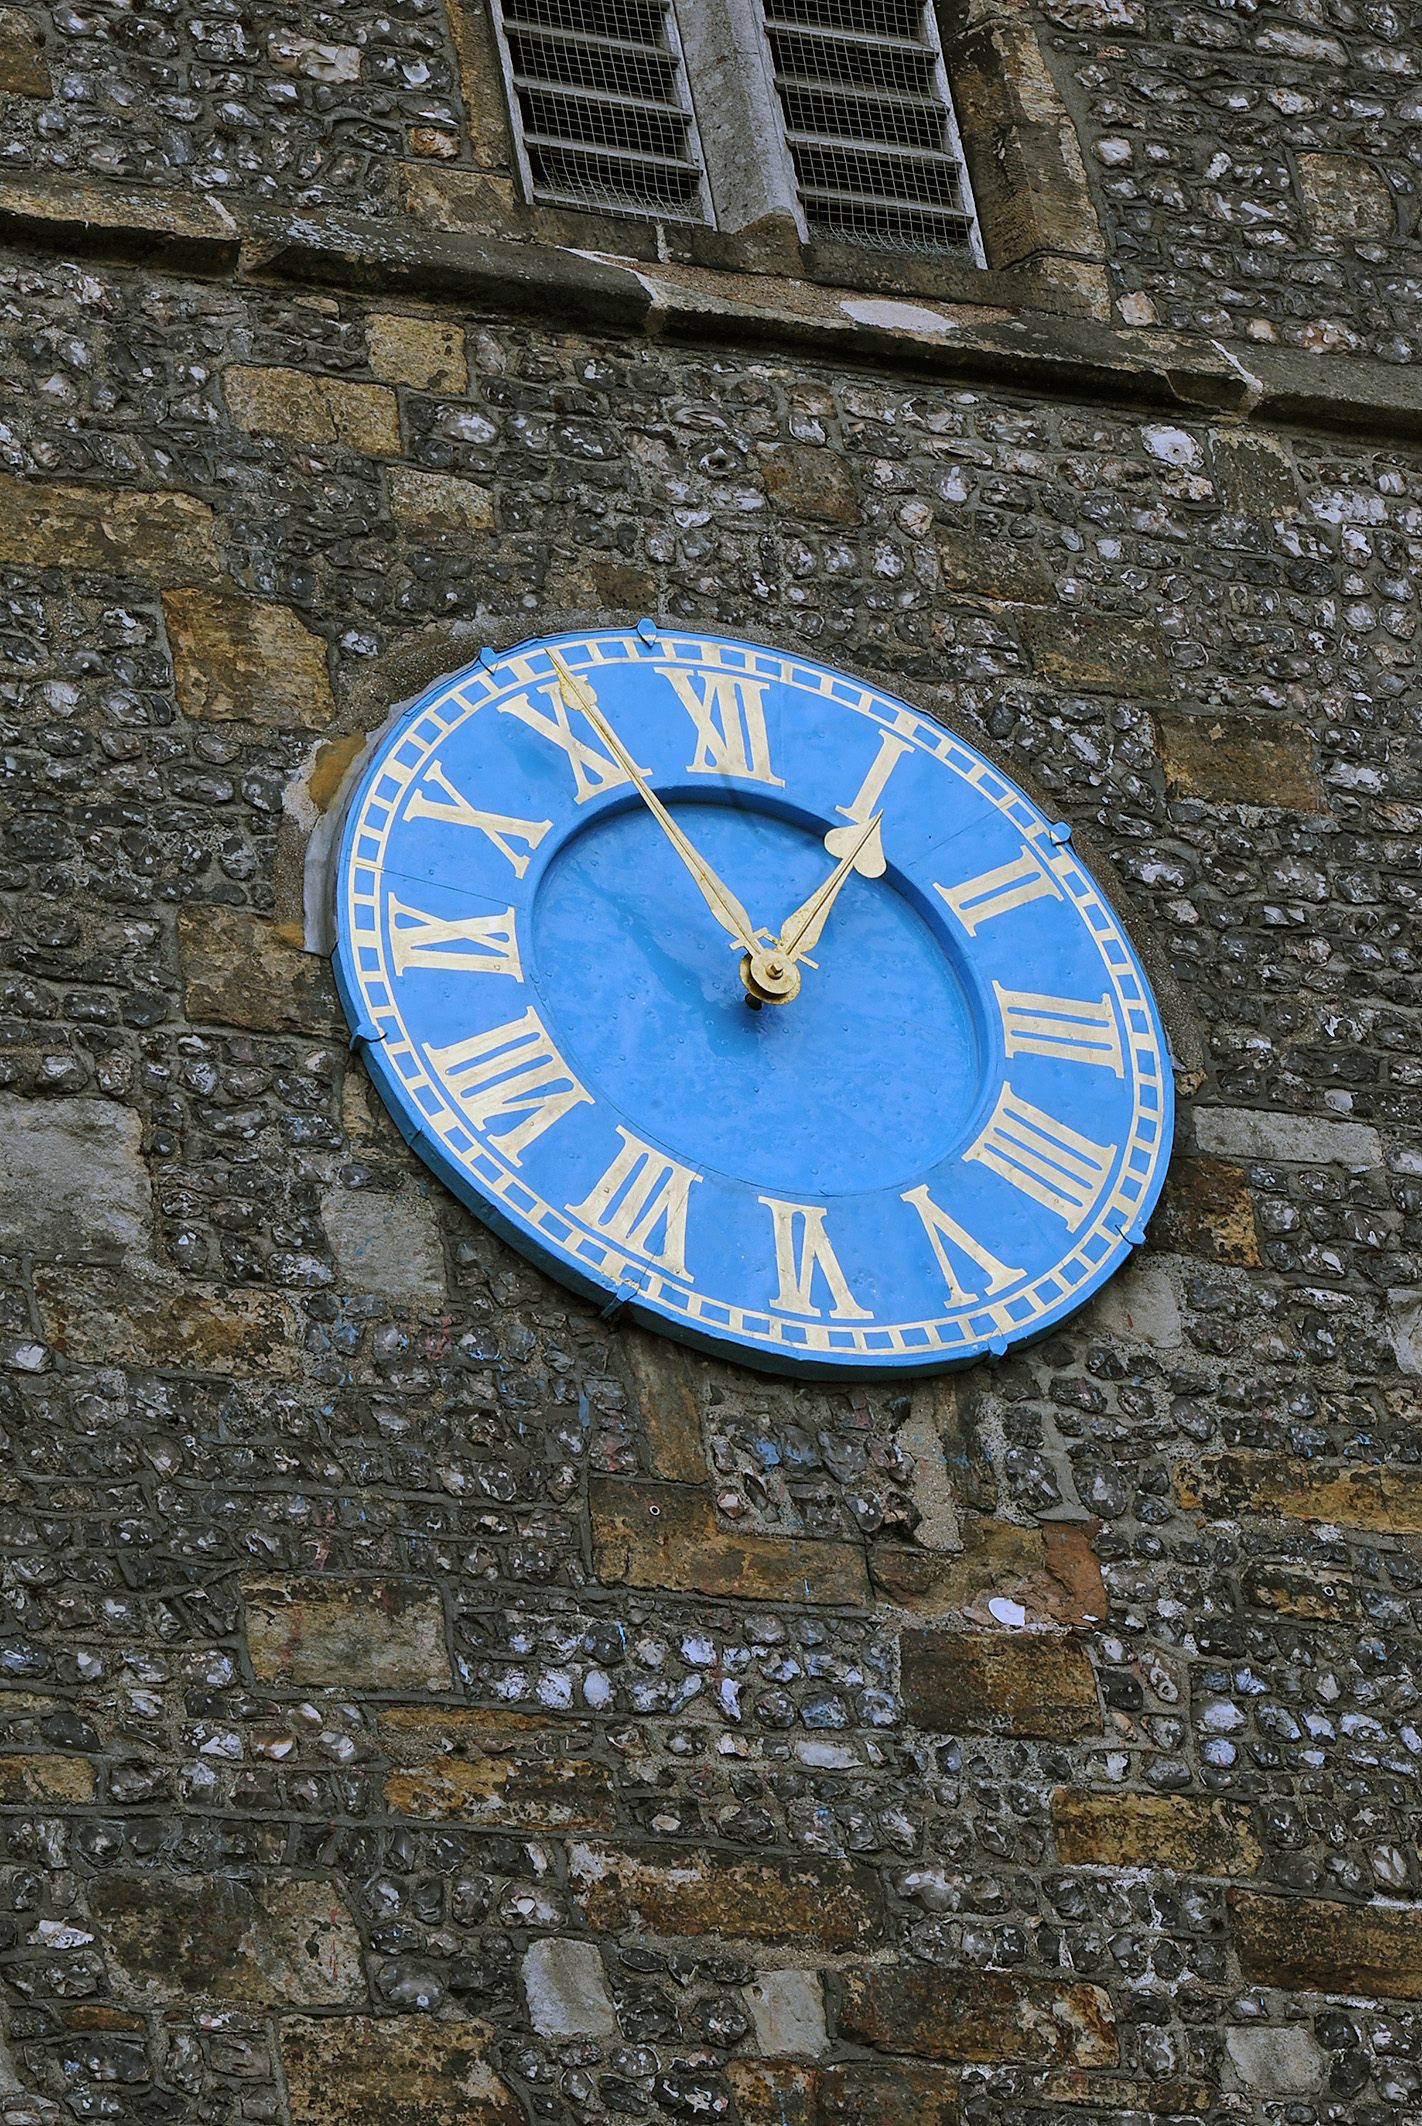 Clock face on the Tower of St Thomas a Becket parish church, Lewes